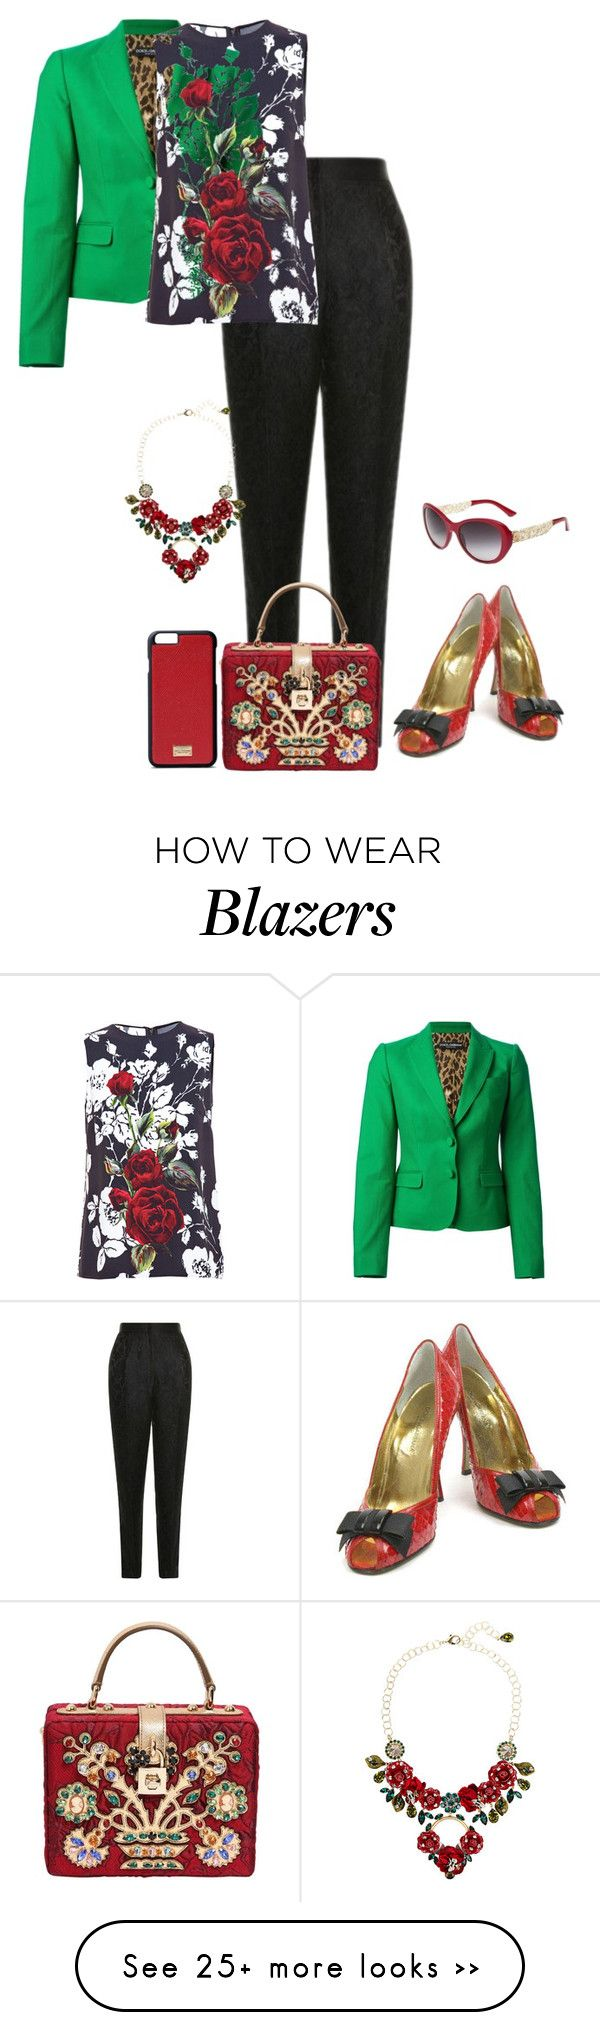 """""""d&g"""" by kim-coffey-harlow on Polyvore featuring Dolce&Gabbana"""